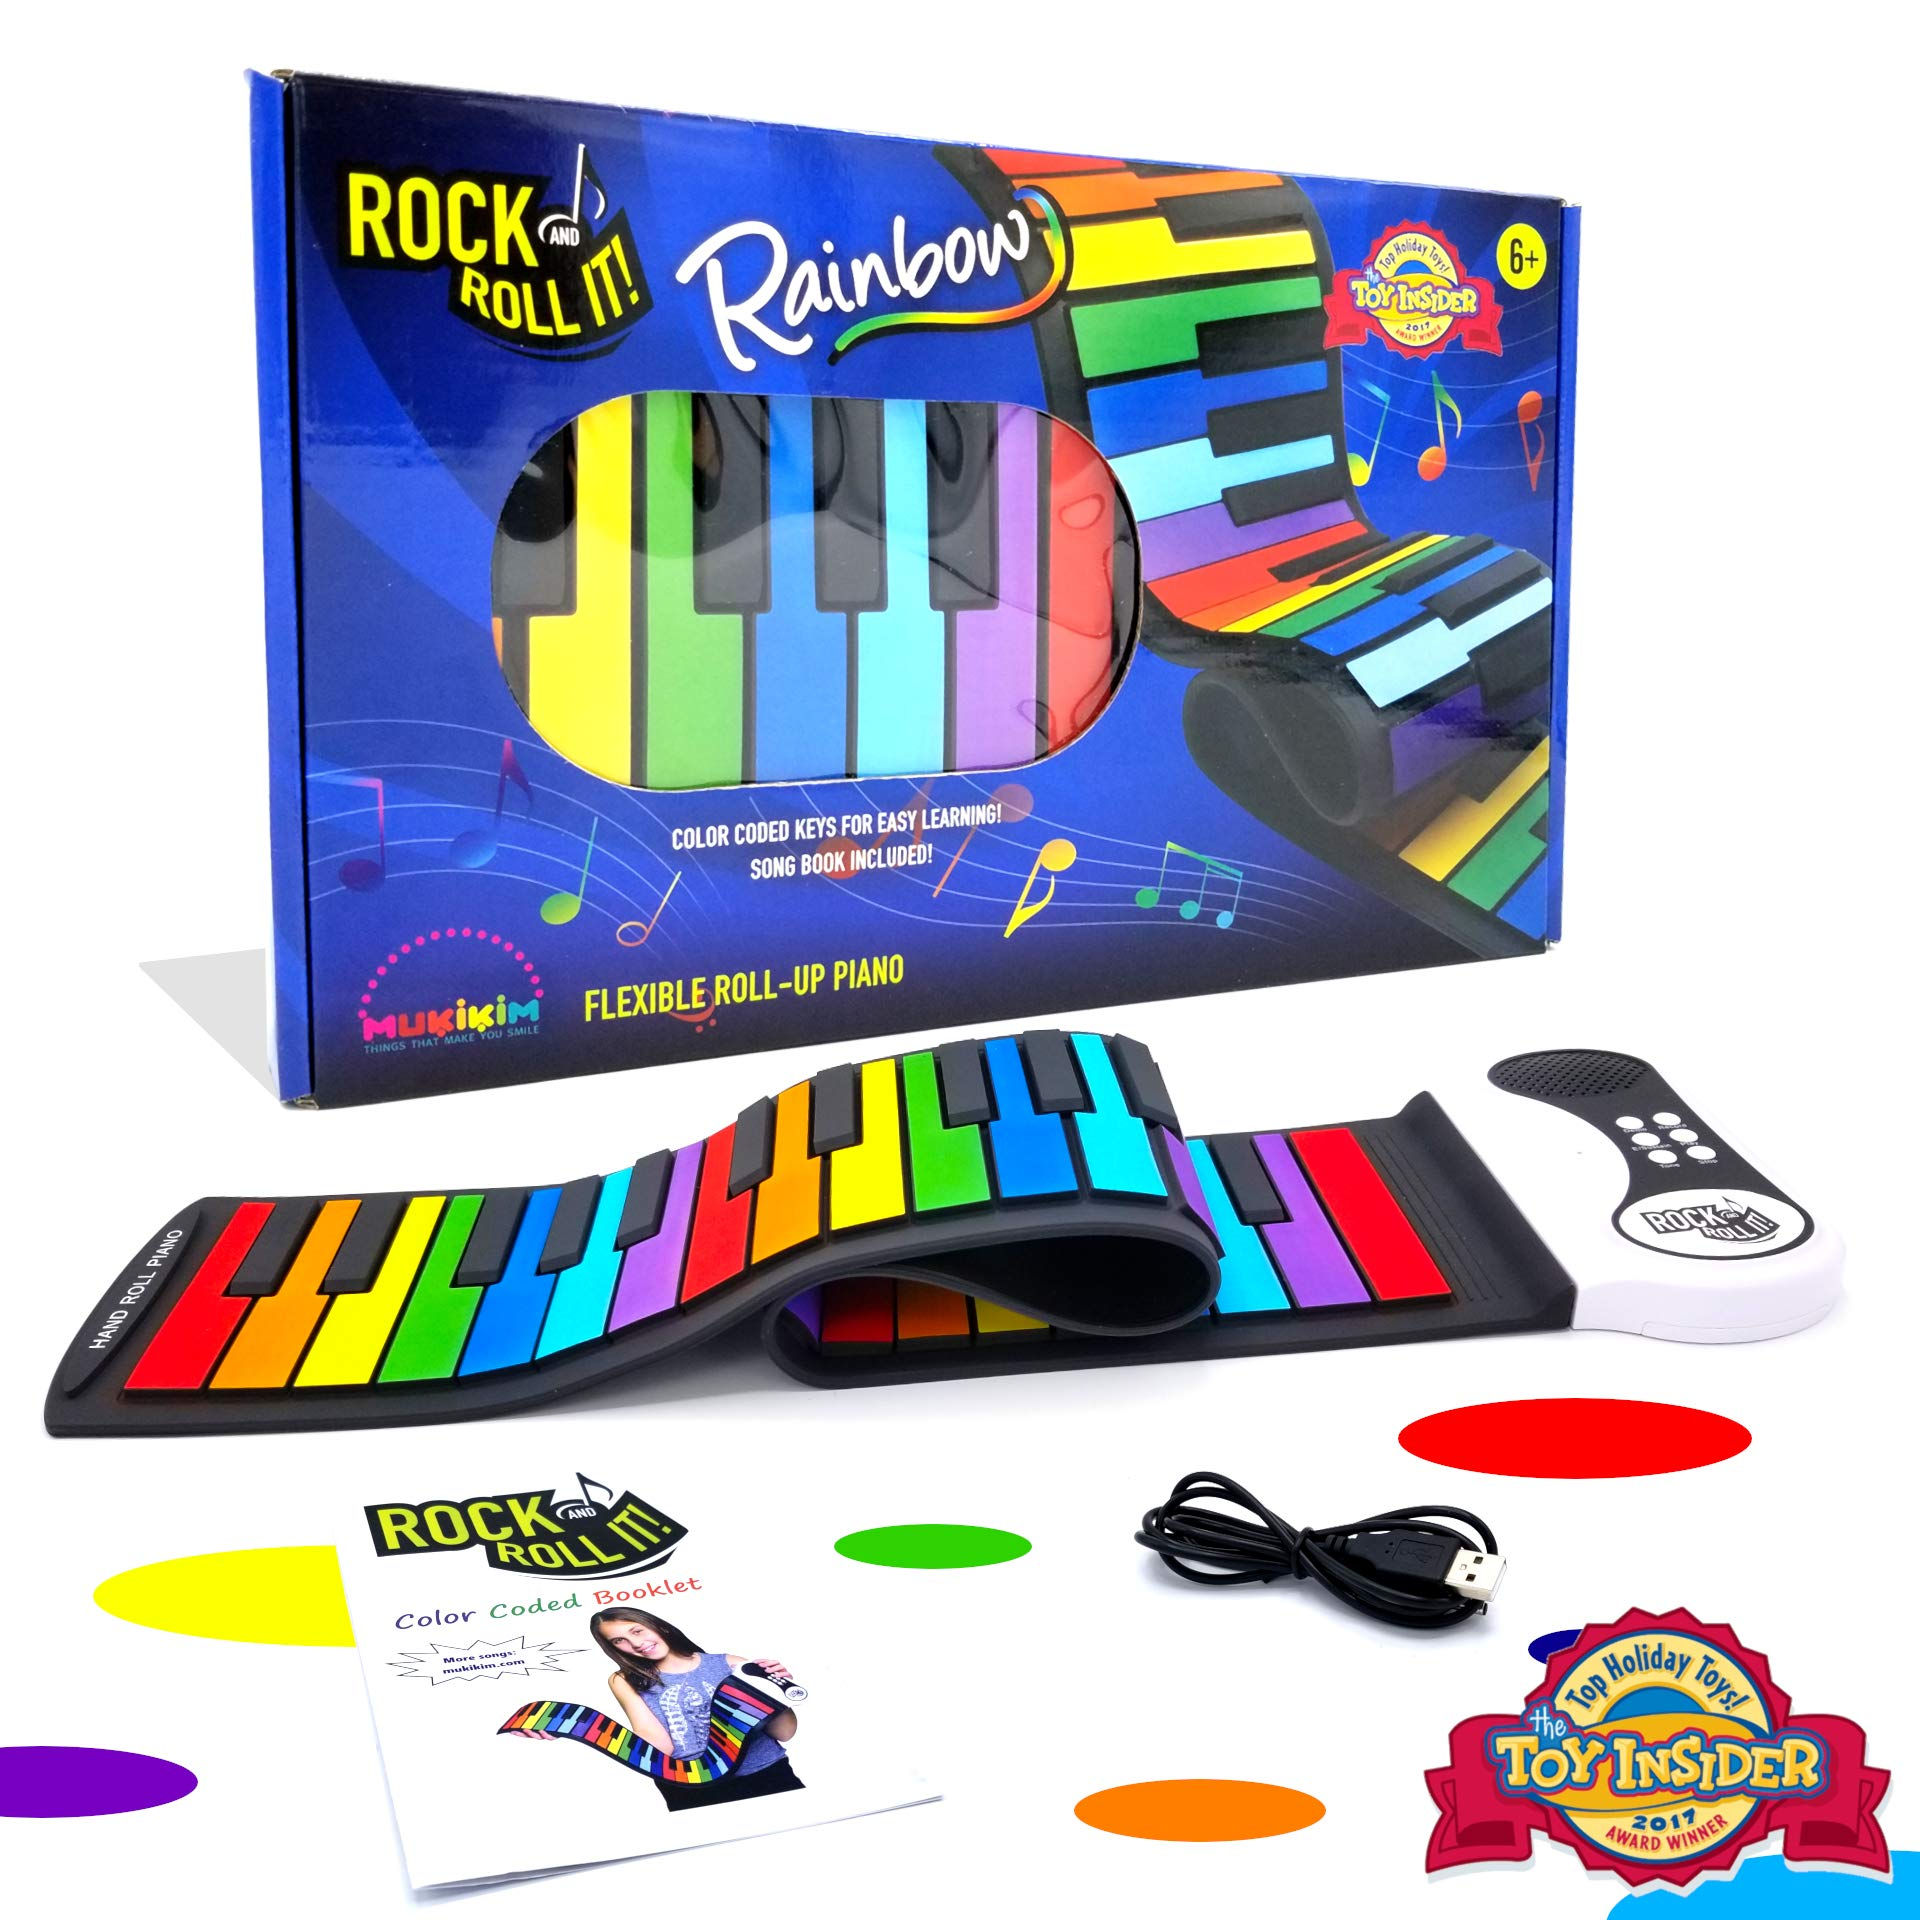 Rock And Roll It - Rainbow Piano. Flexible, Completely Portable, 49 standard Keys, battery OR USB powered. Includes play-by-color song book! by MukikiM